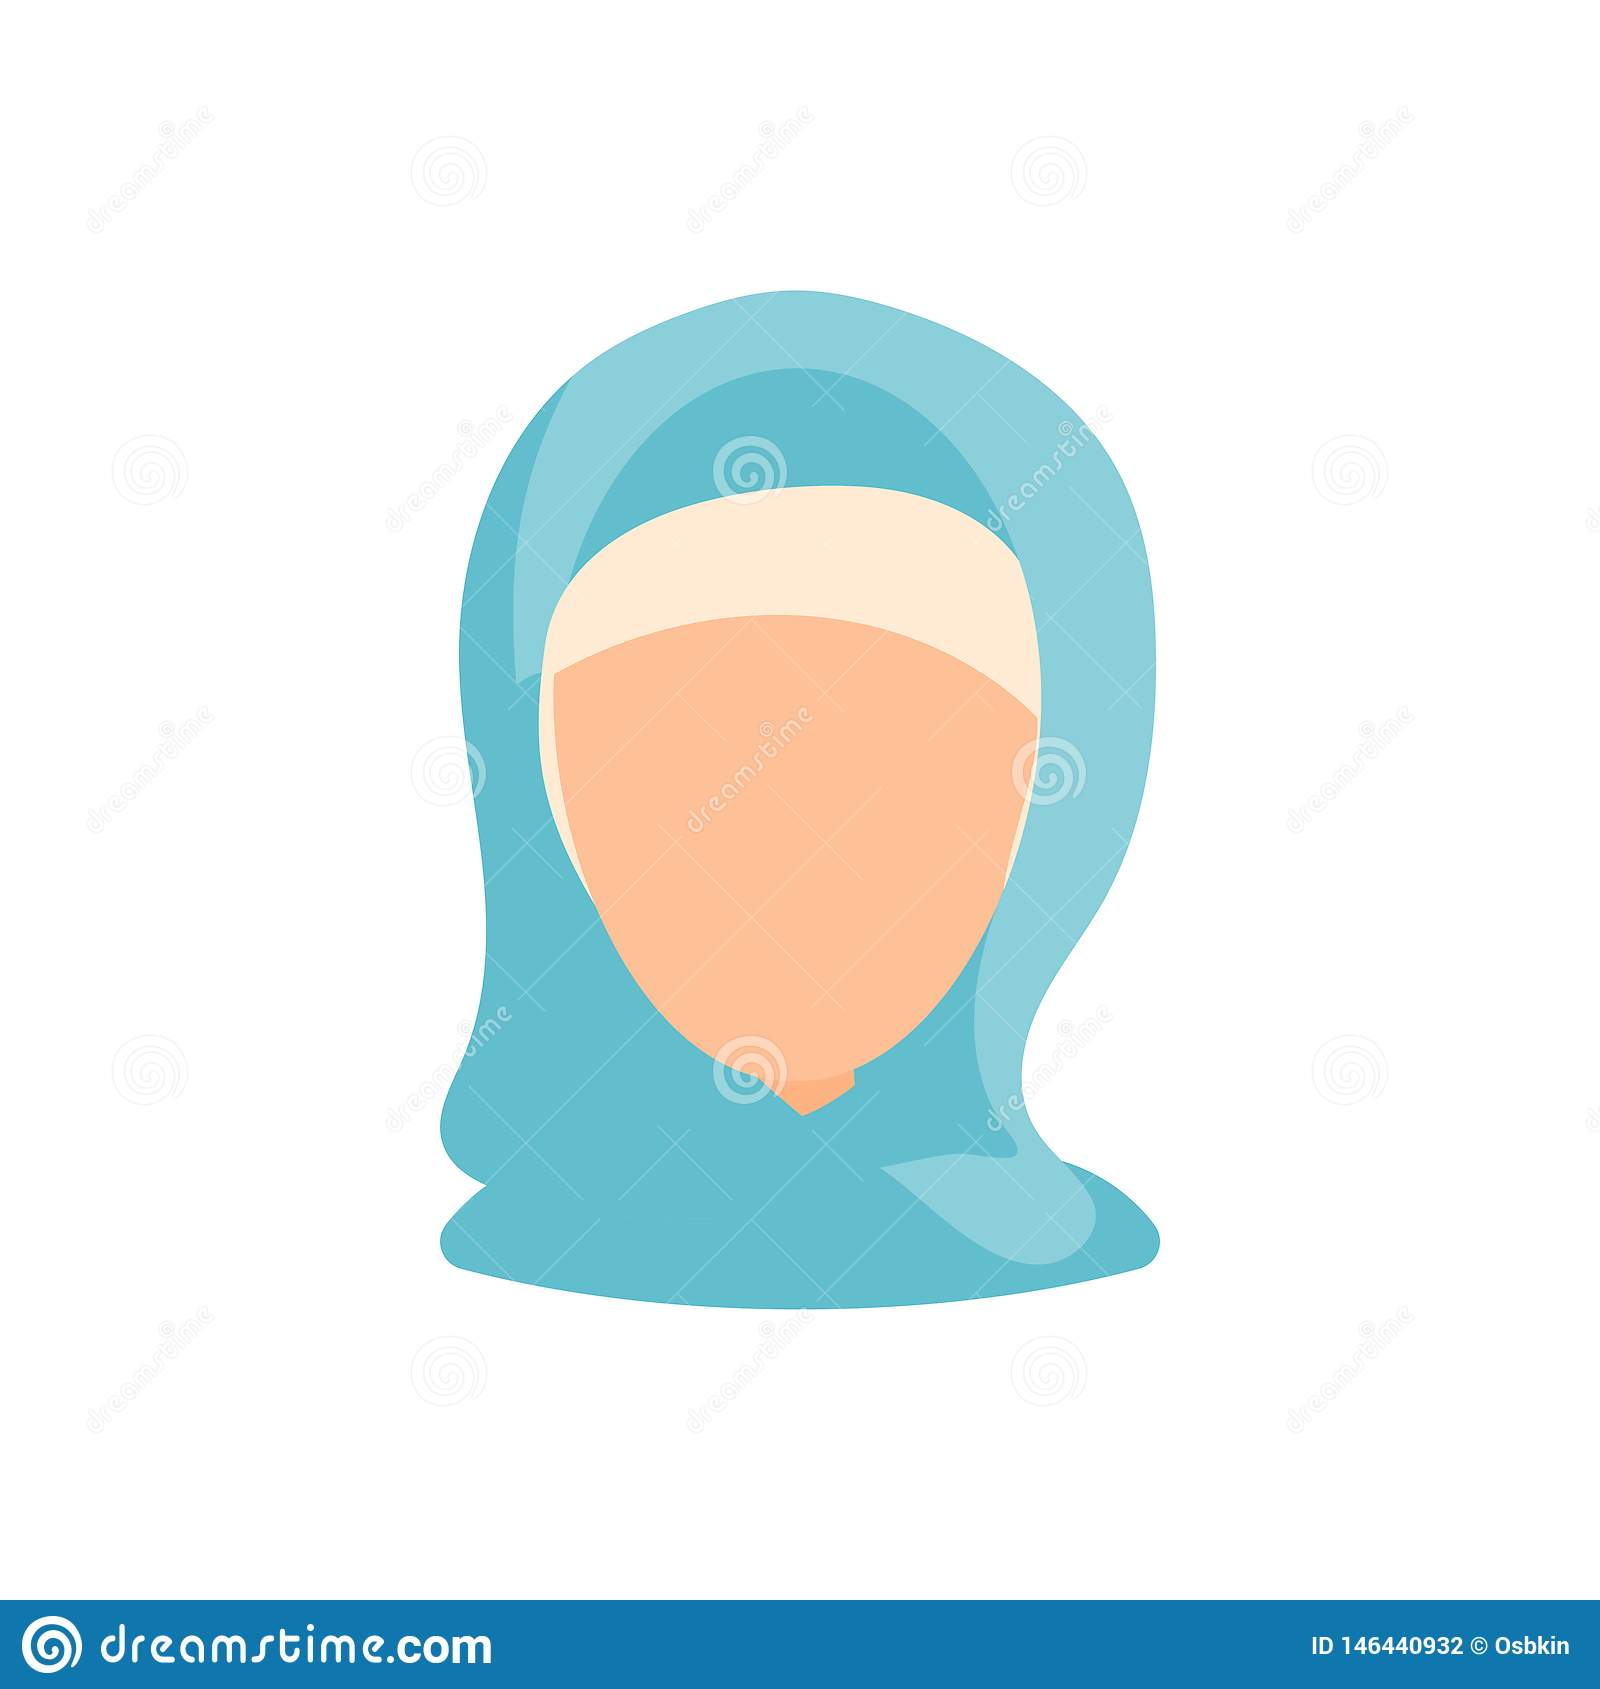 Female user avatar profile picture icon. Isolated vector illustration in flat design people character. Muslim woman